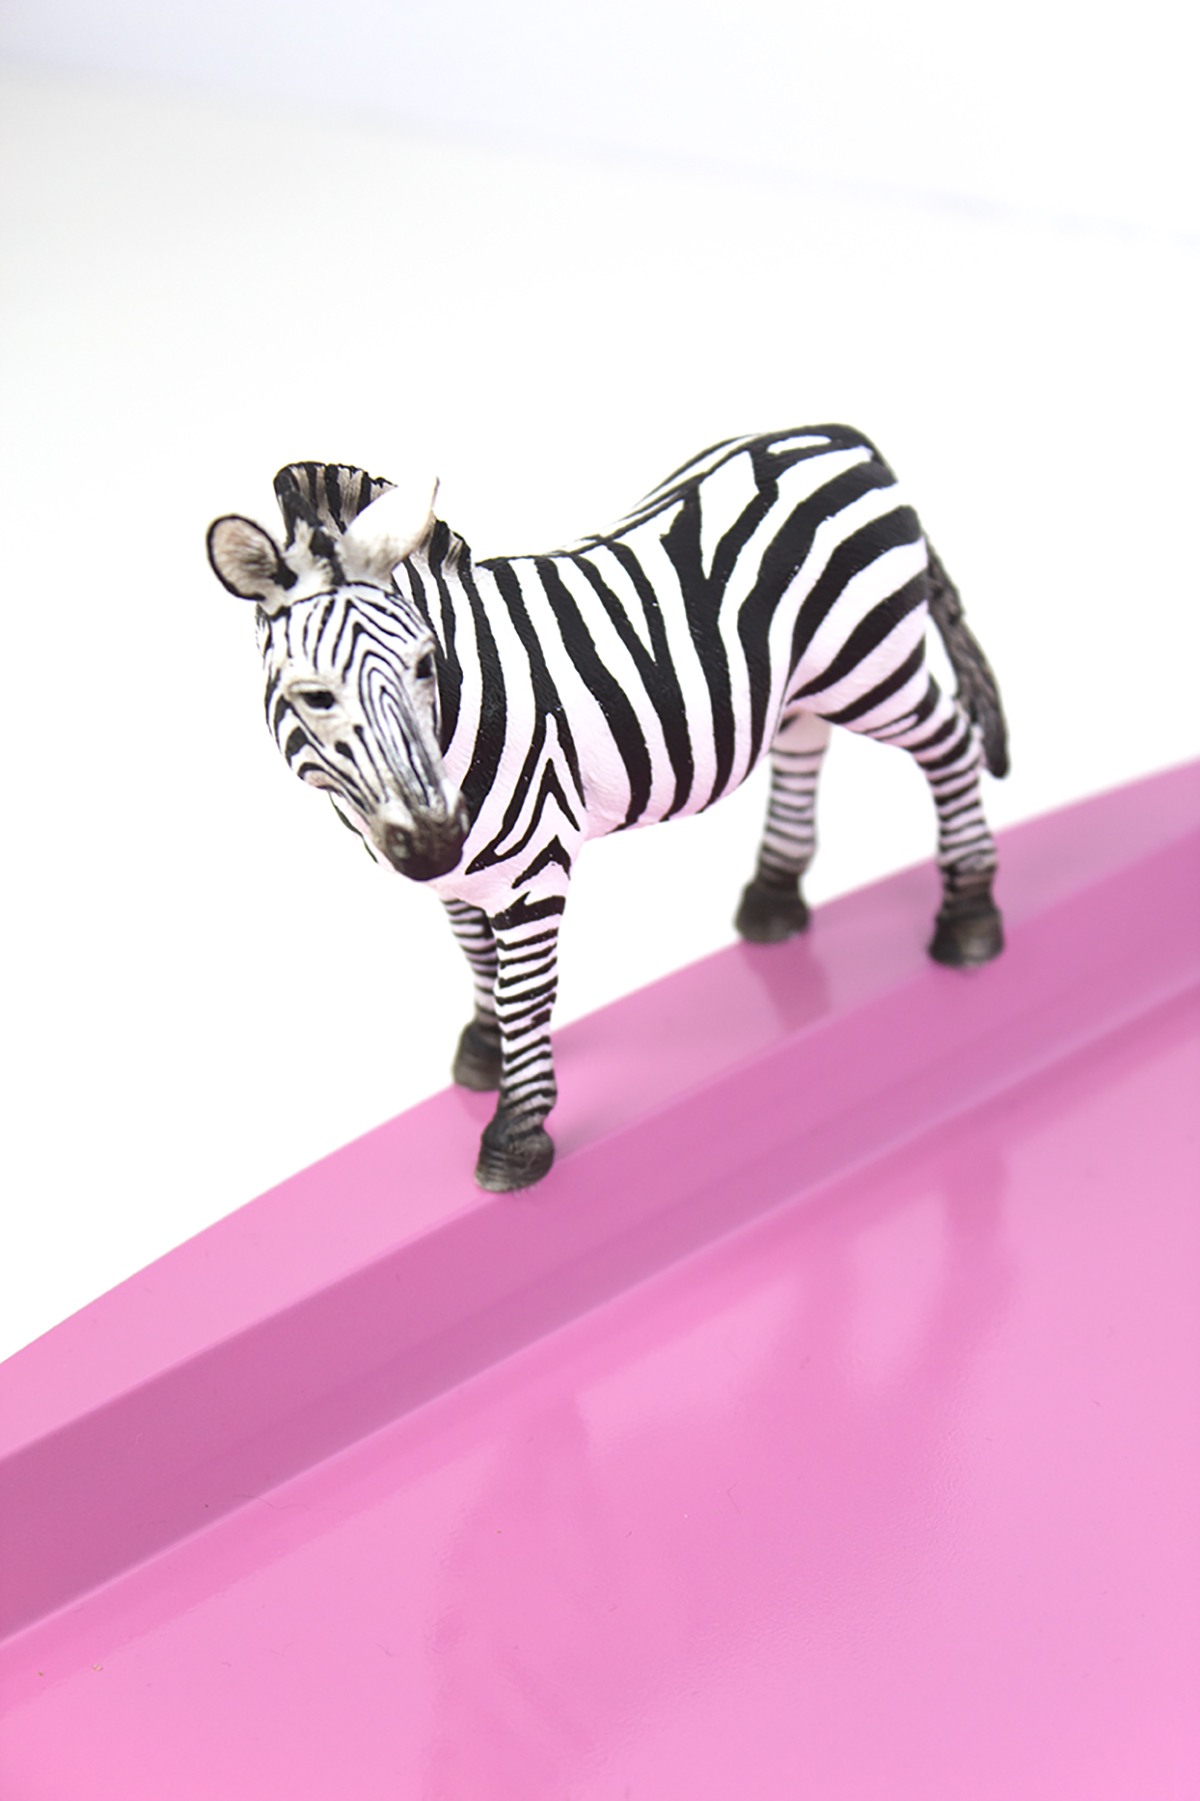 DIY Zebra Tray. Click for the full how-to!